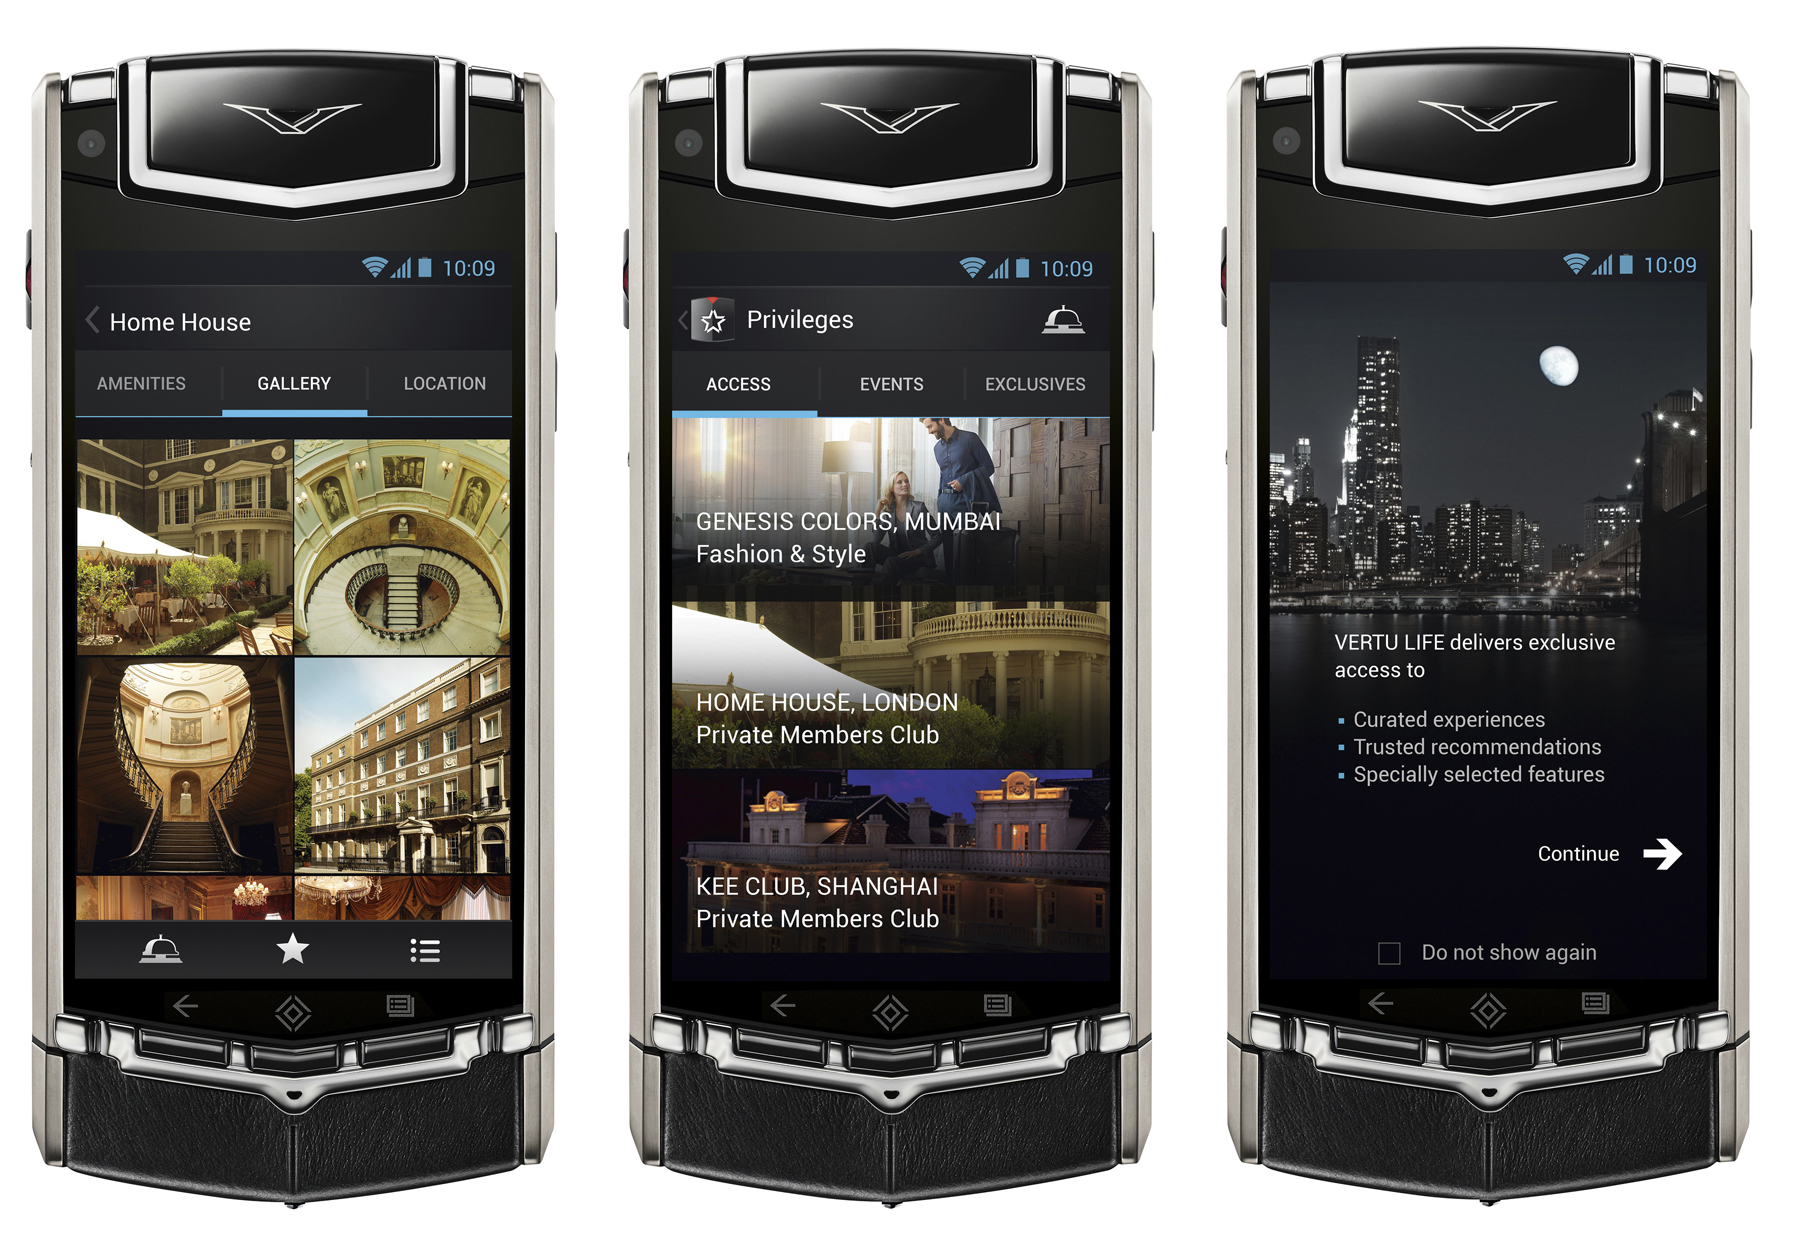 Vertu TI Vertu Vertu TI Red Vertu TI Blue Vertu TI new colors Vertu TI availability Vertu TI price Virtu Android Virtue specs 7